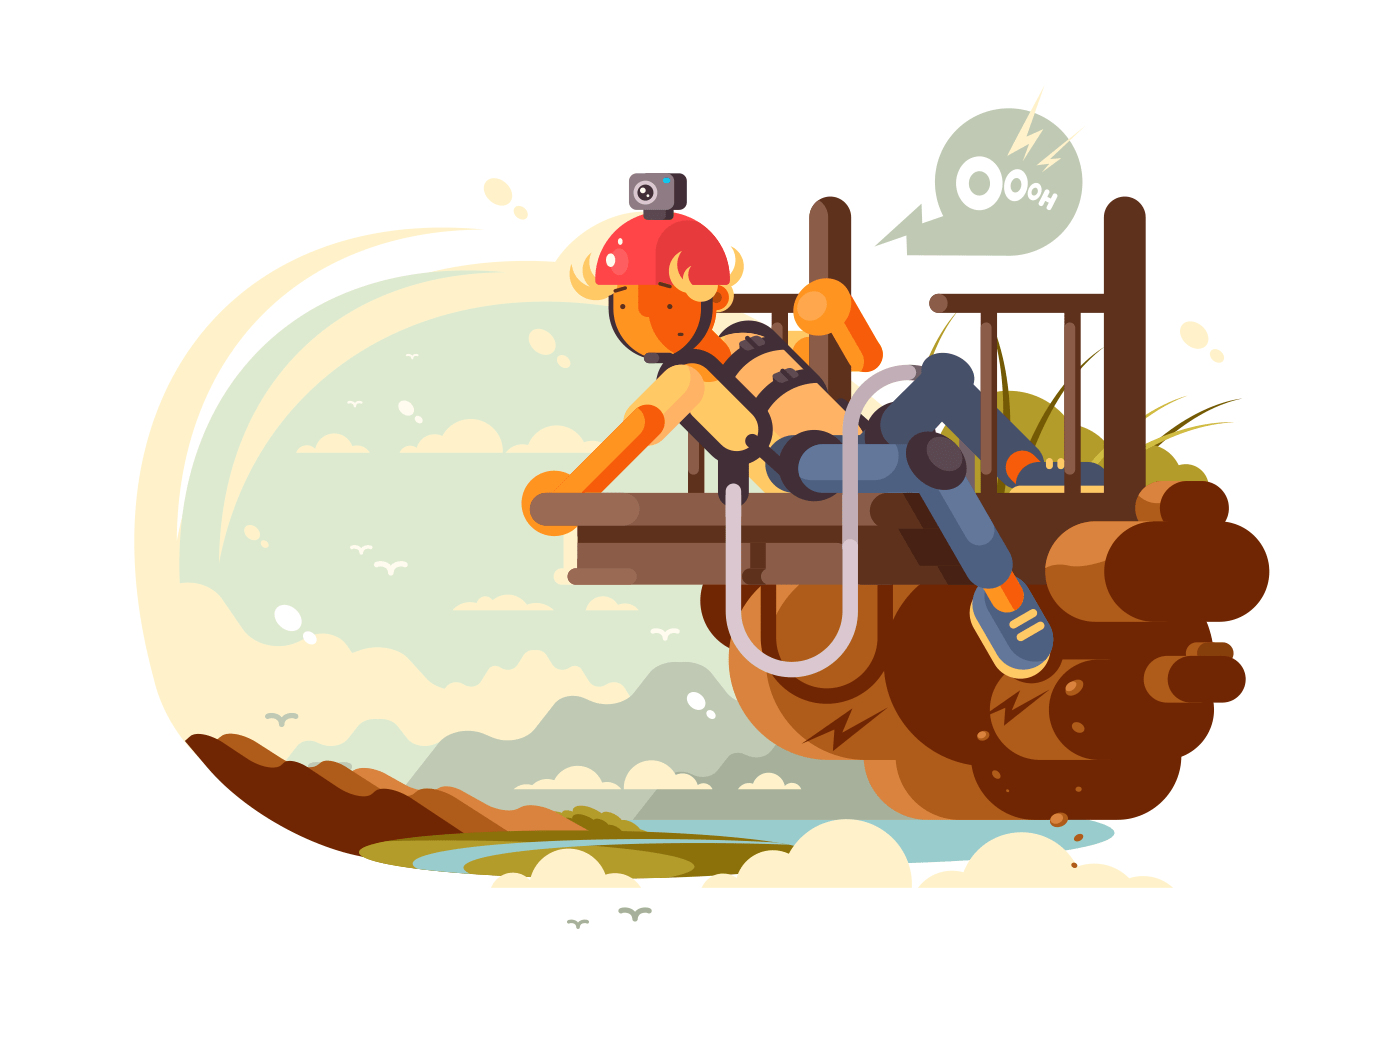 Man bungee jumping illustration